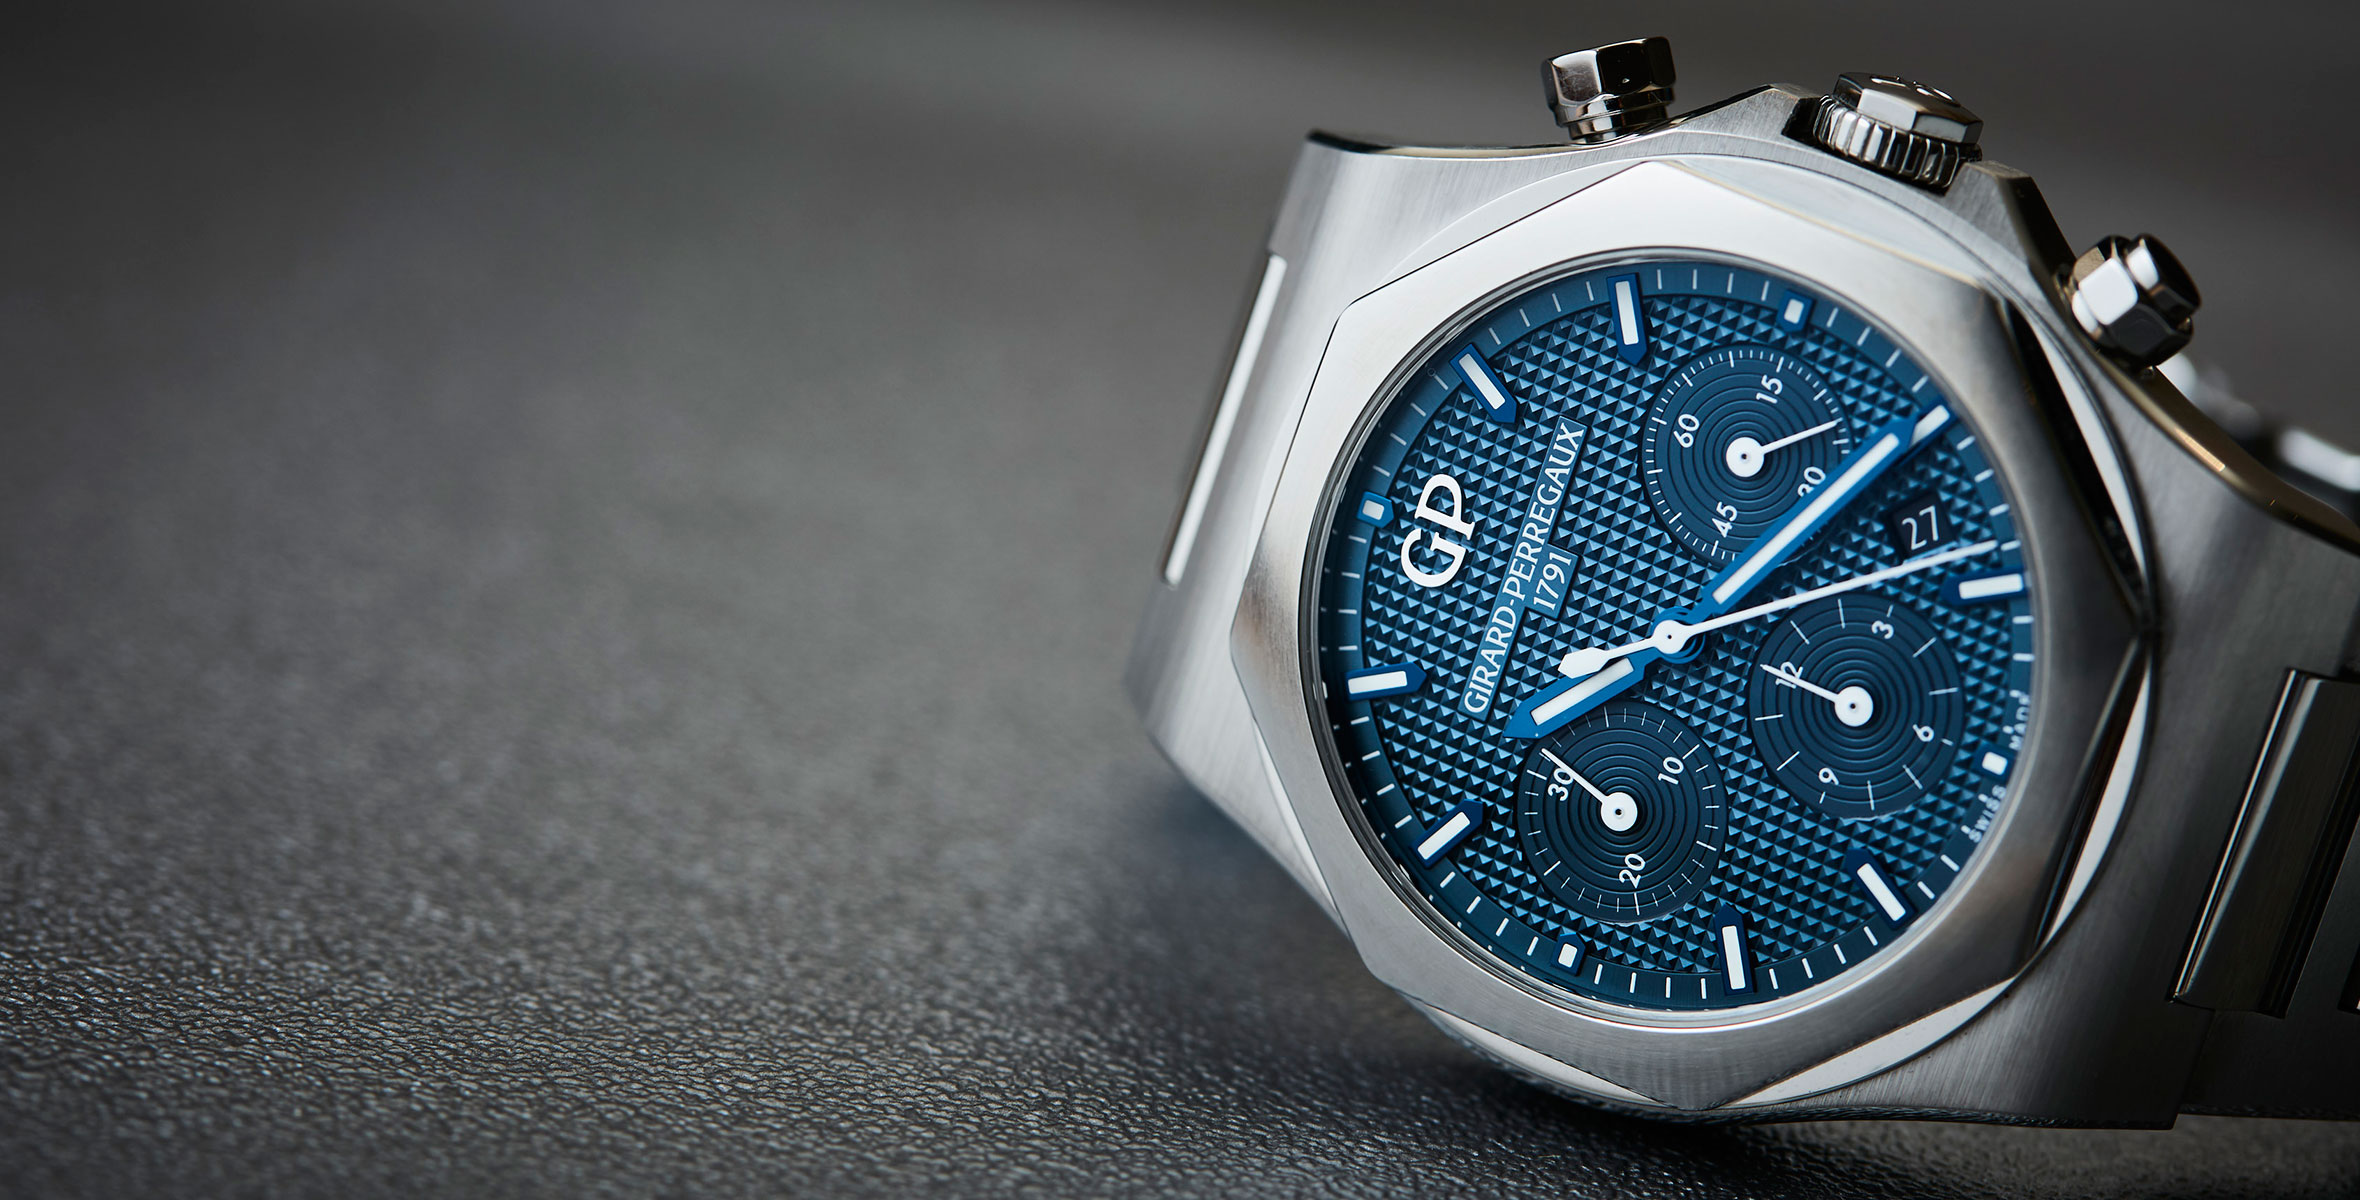 MY WEEK WITH: The Girard-Perregaux Laureato Chronograph, and how I got completely turned around to loving it